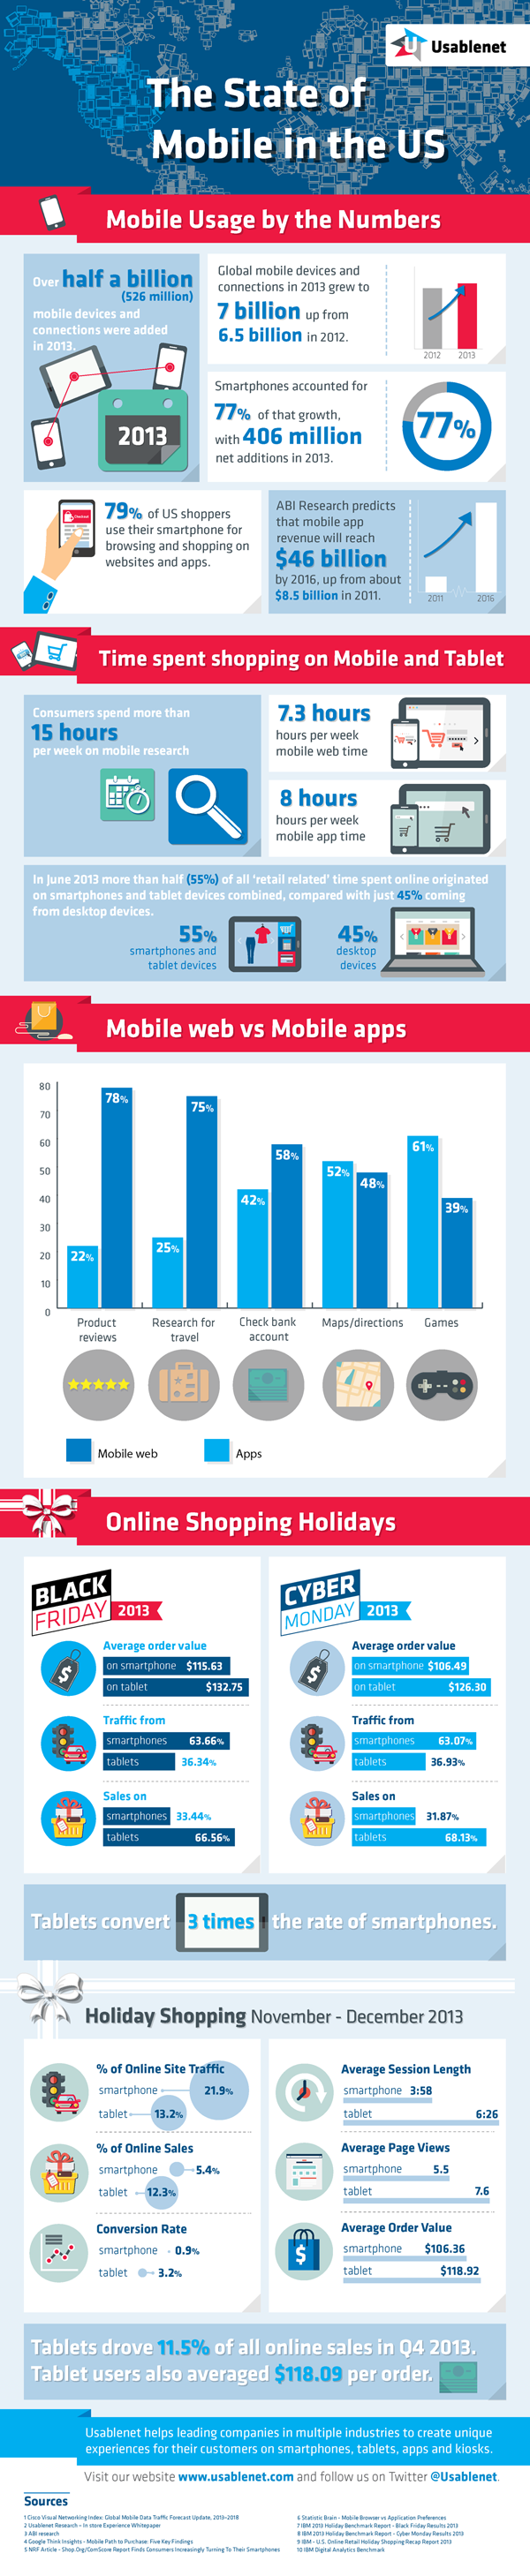 Mobile App Usage By The Numbers Infographic